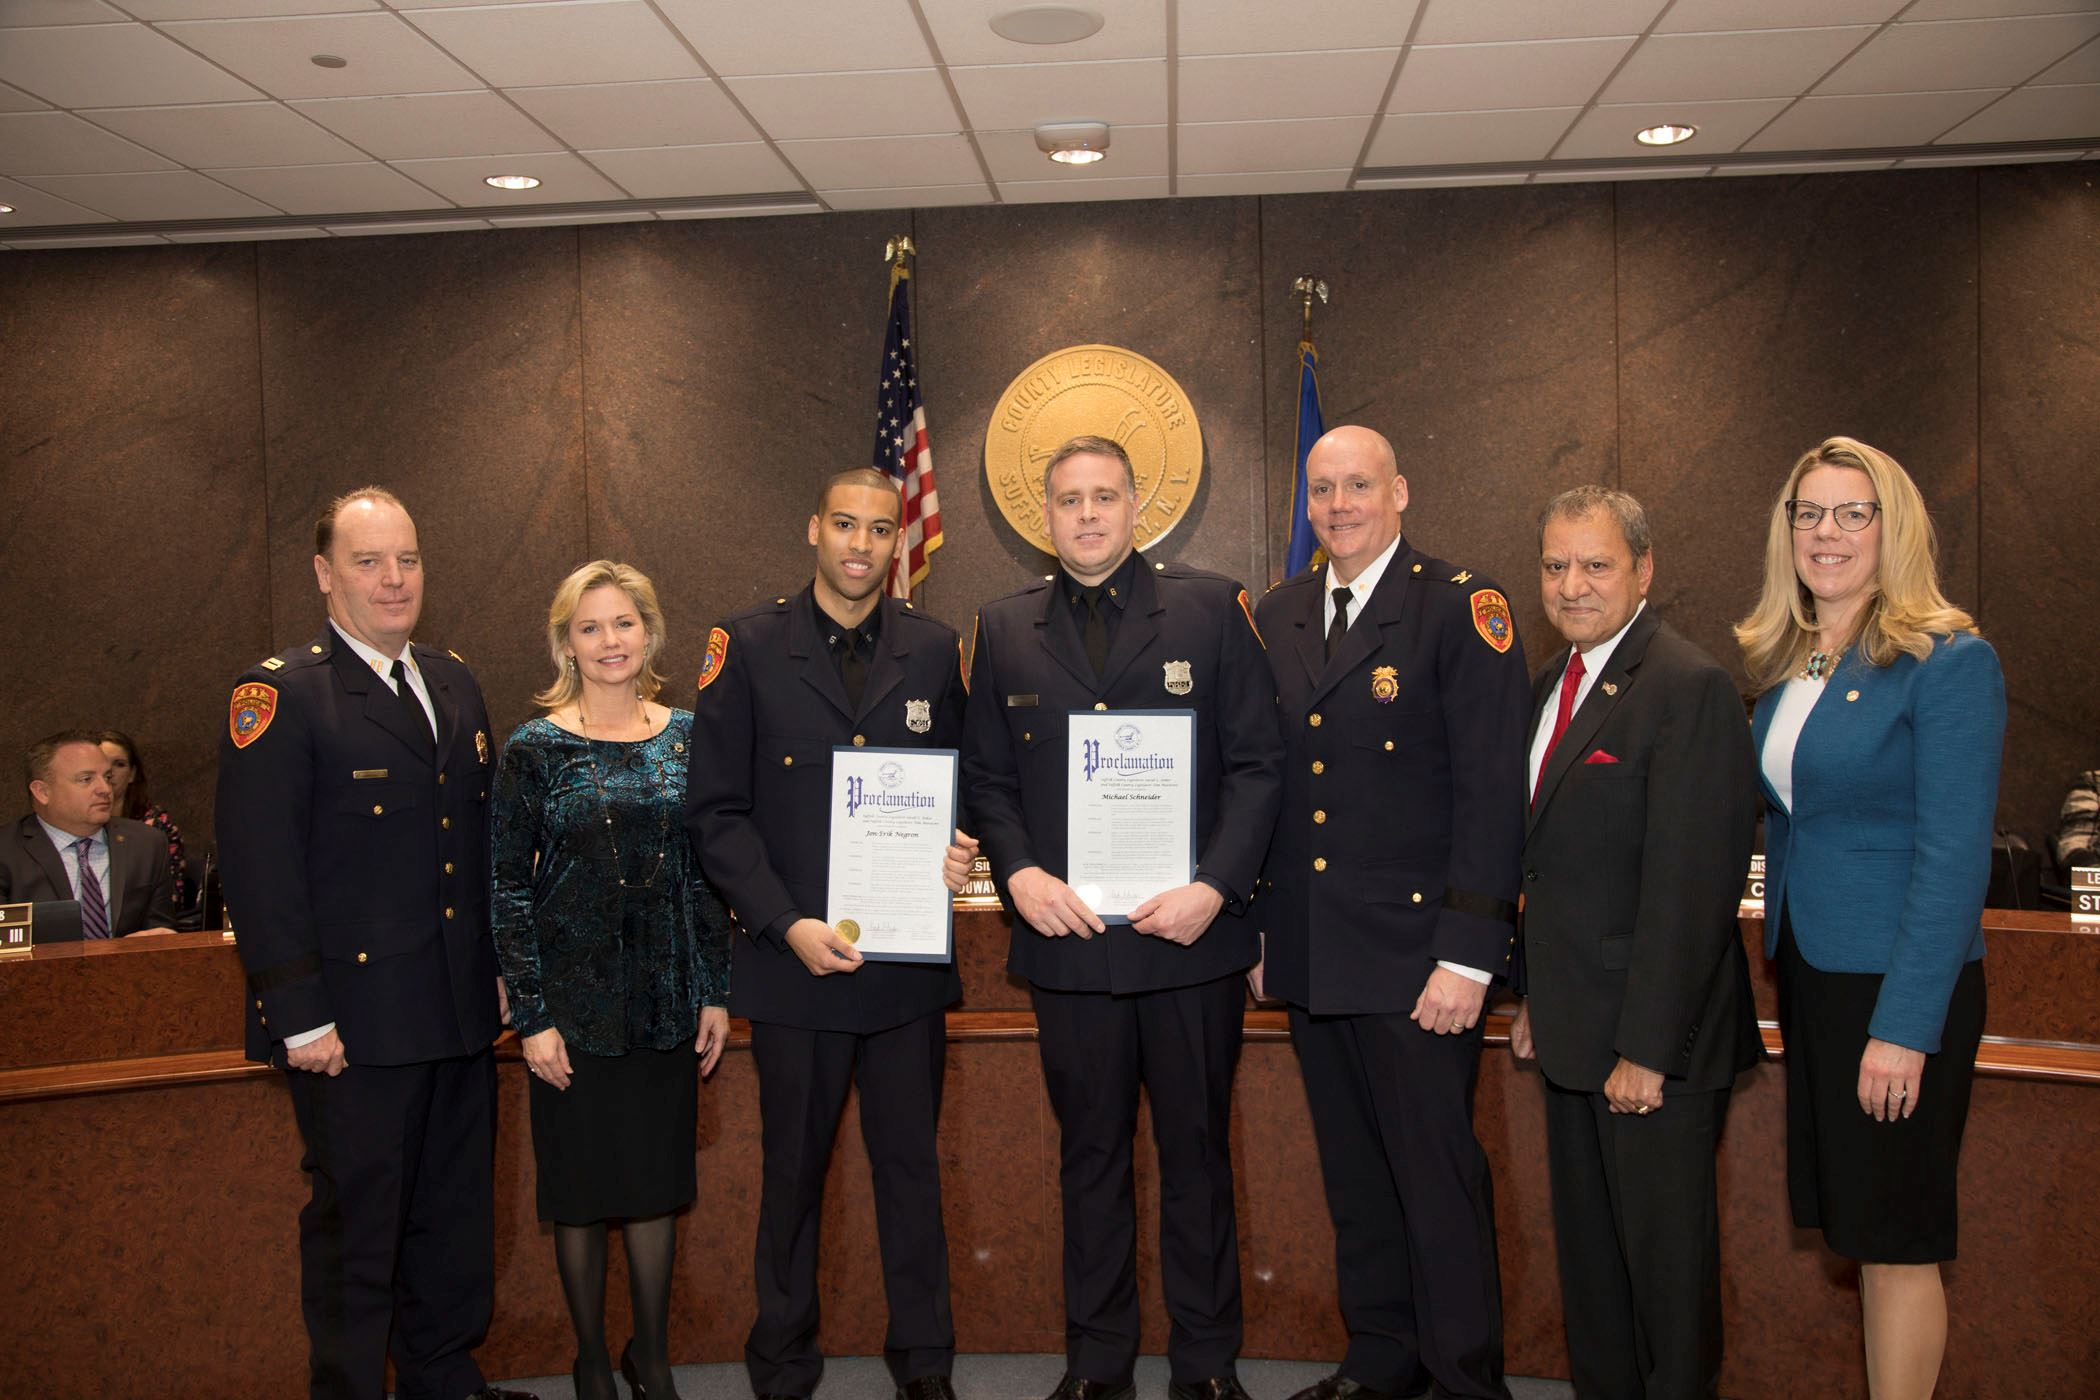 Officer Negron and Officer Schneider received proclamations for their service to the police departme